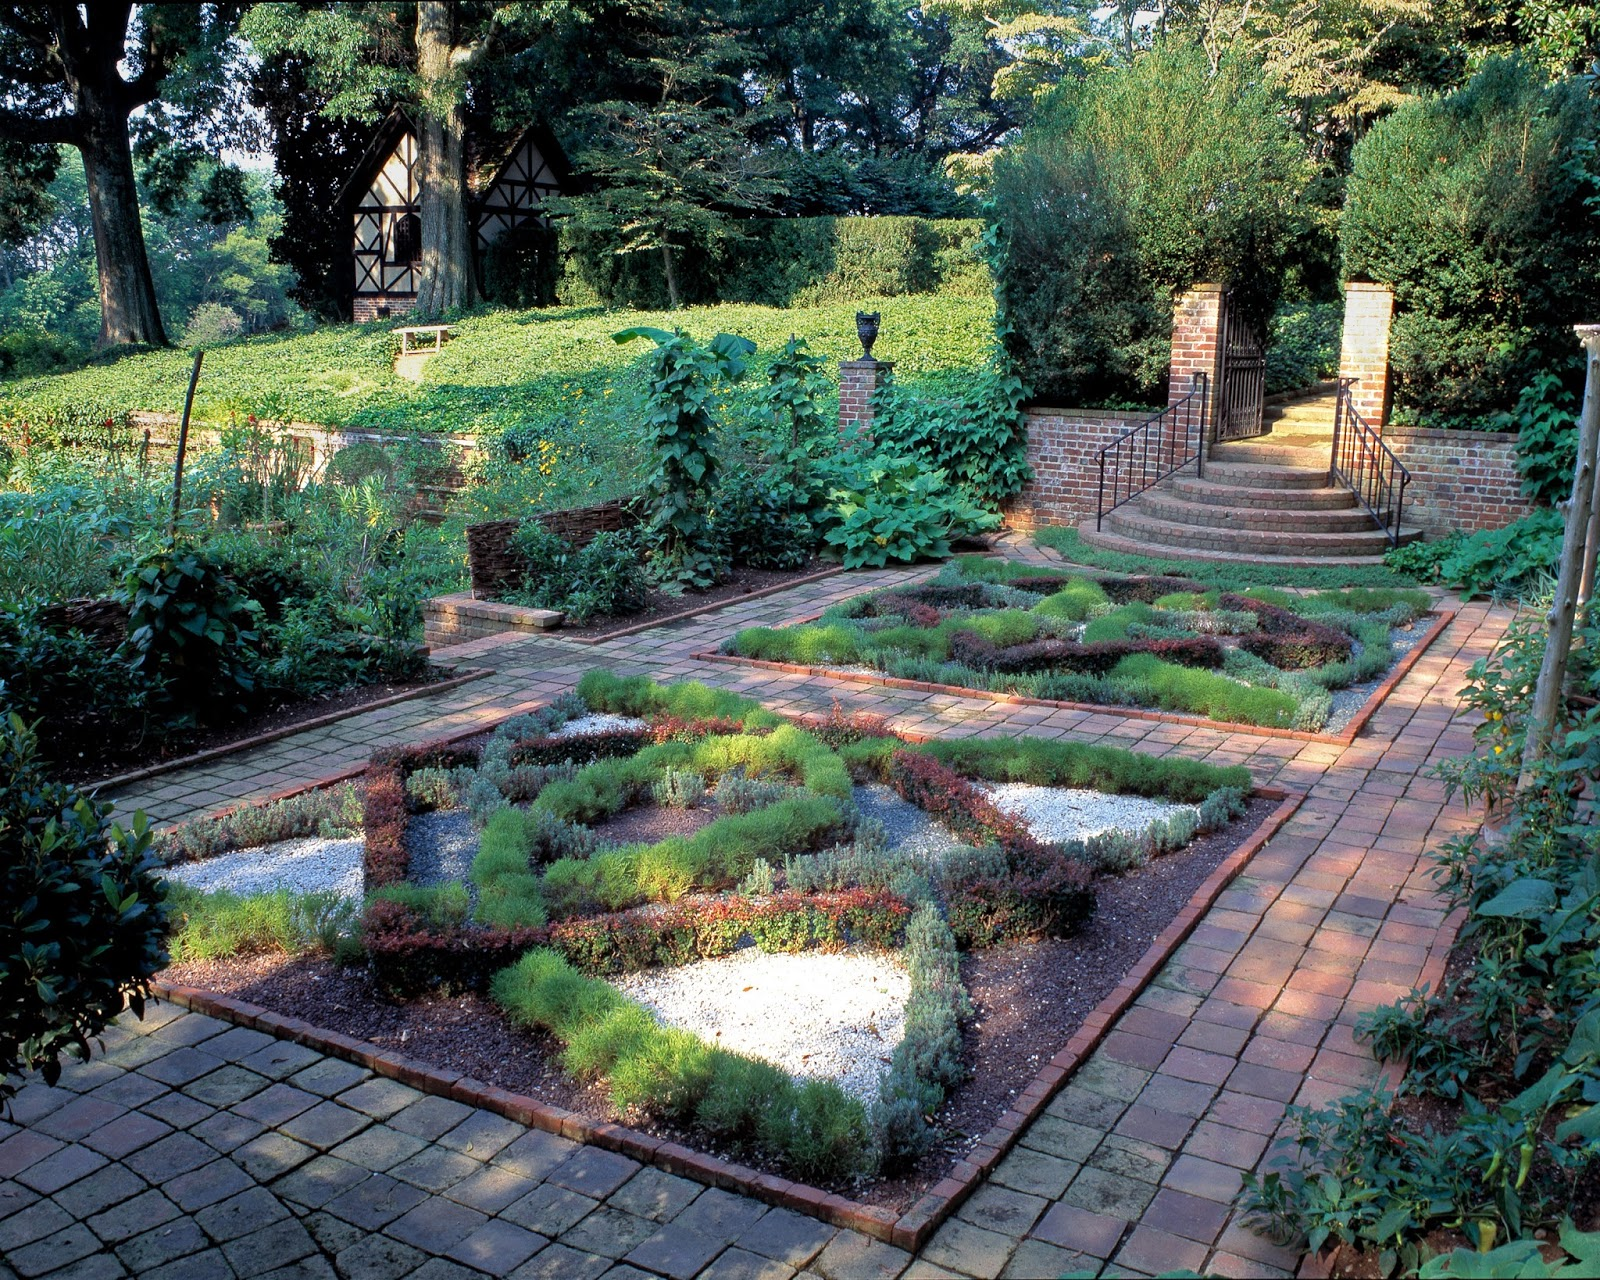 Pin by south fl mom on side garden checkerboard pinterest for English knot garden designs